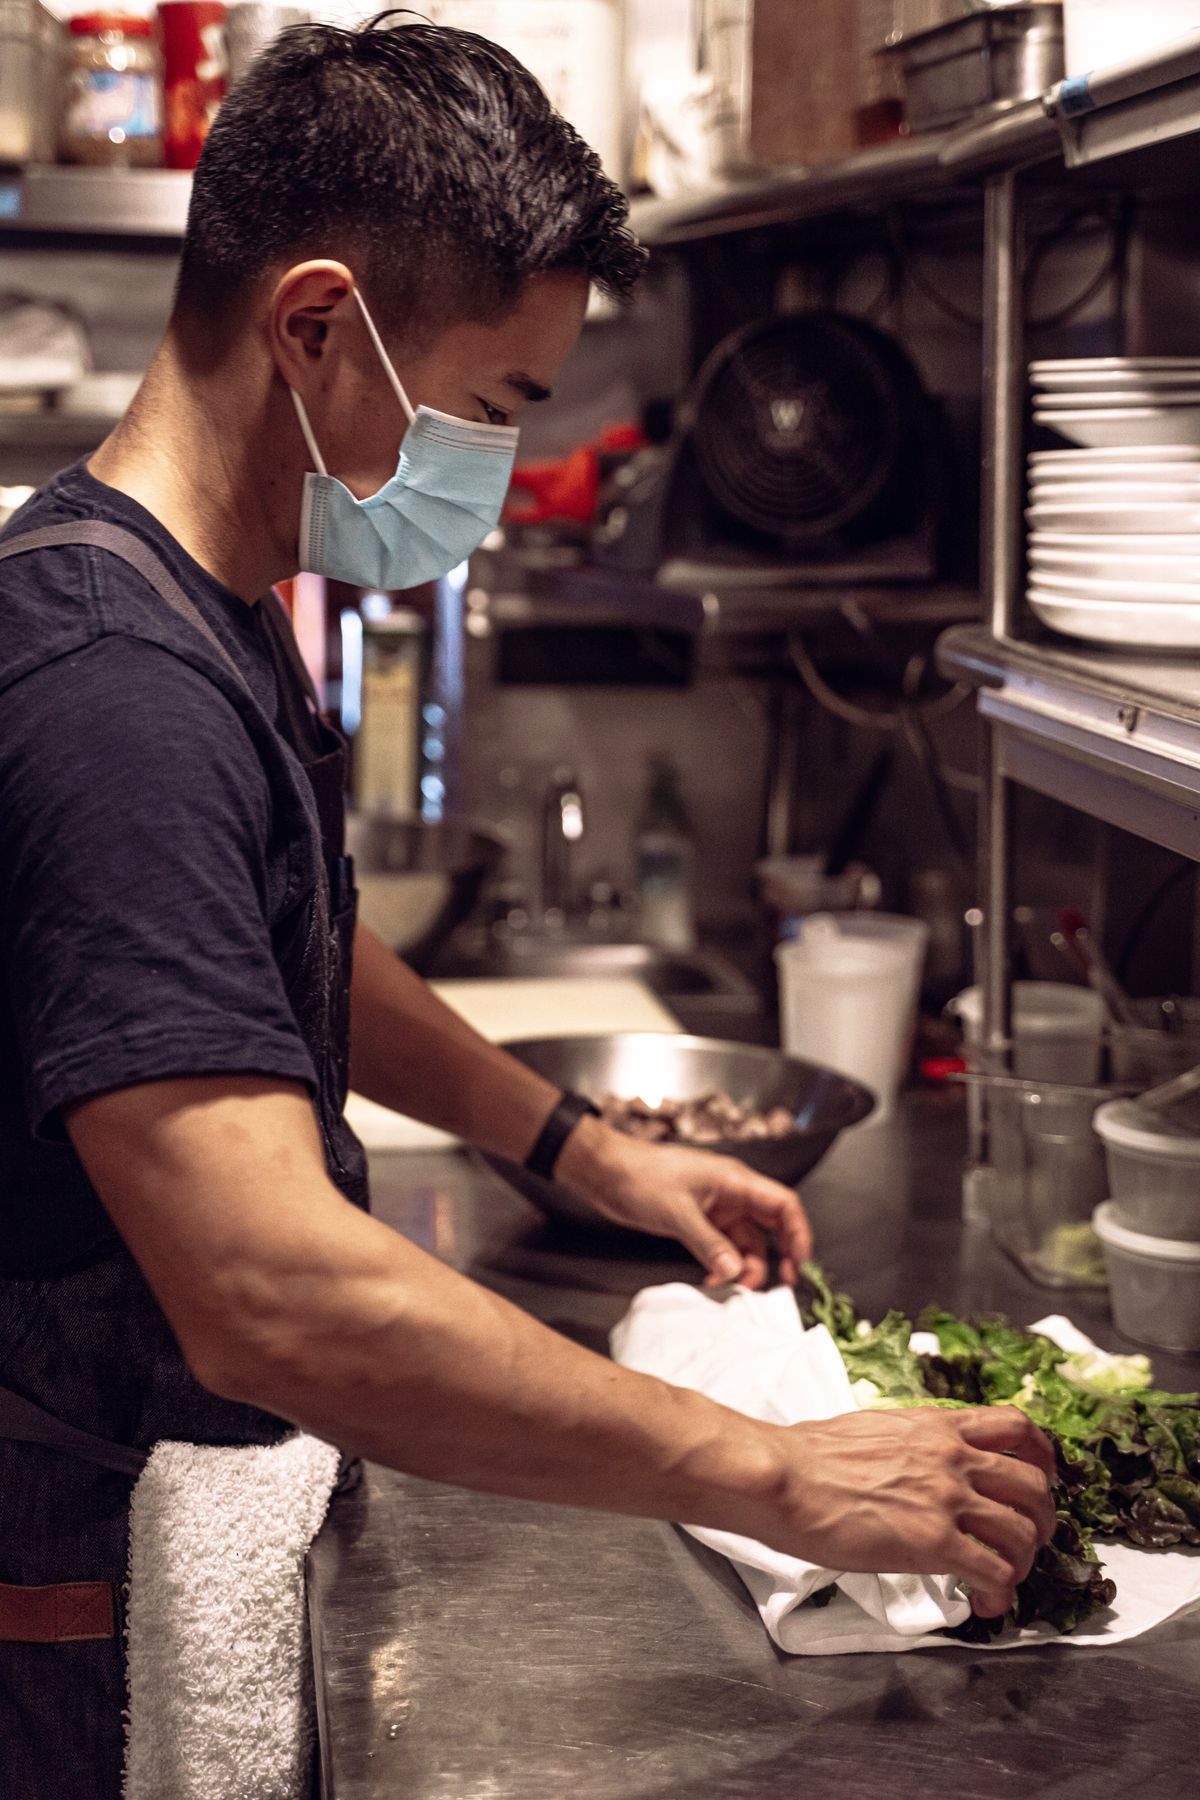 A man in a black t-shirt and disposable blue face mask stands at a restaurant kitchen counter preparing vegetables